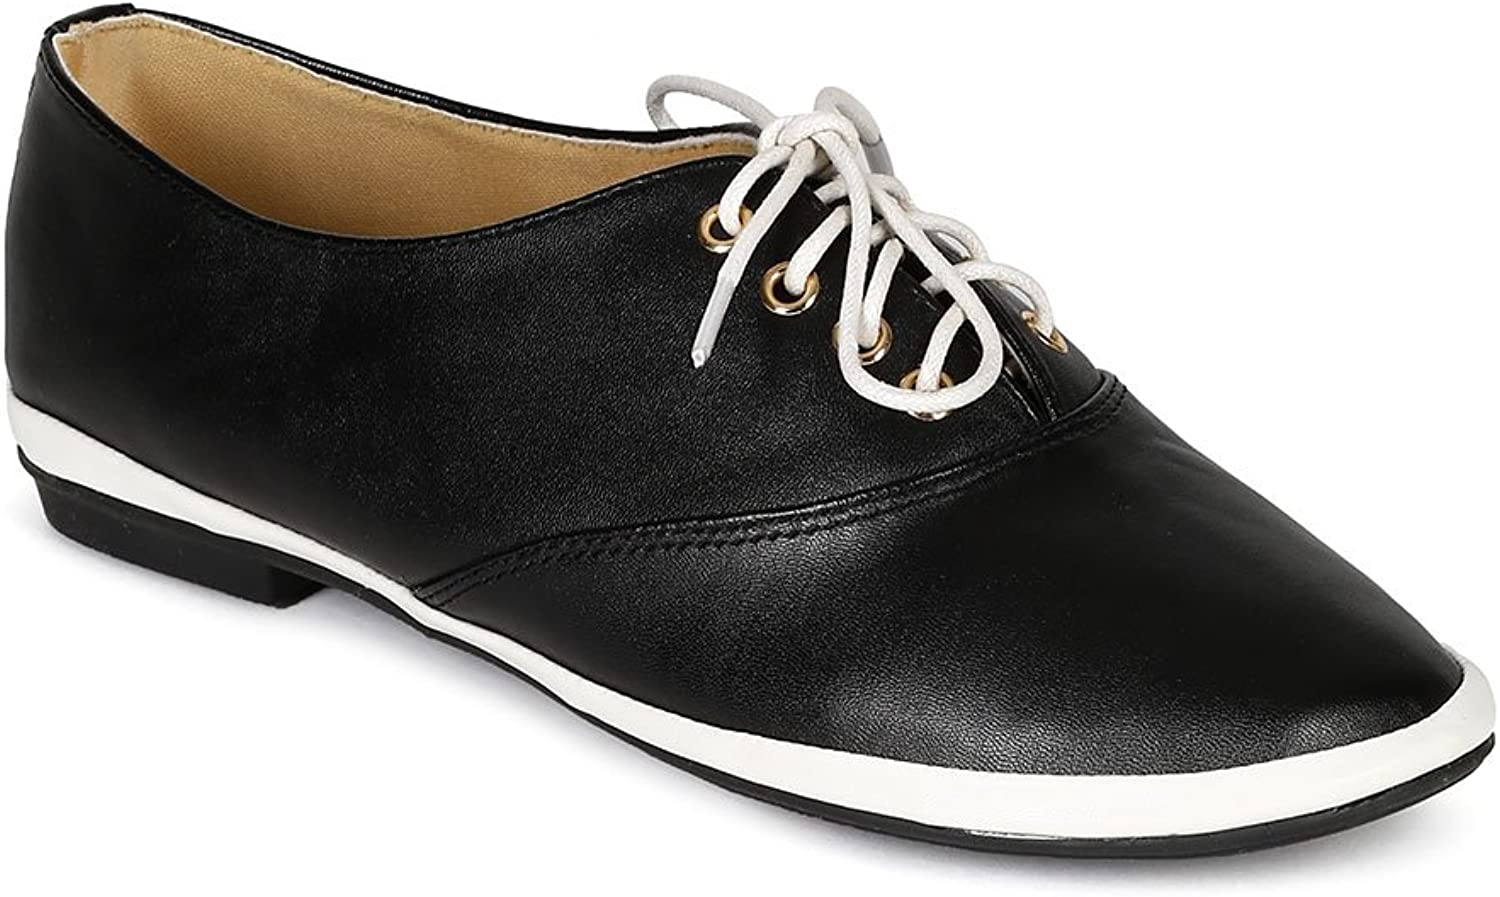 Nature Breeze CA50 Women Leatherette Two Tone Lace Up Round Toe Sneaker Flat - Black